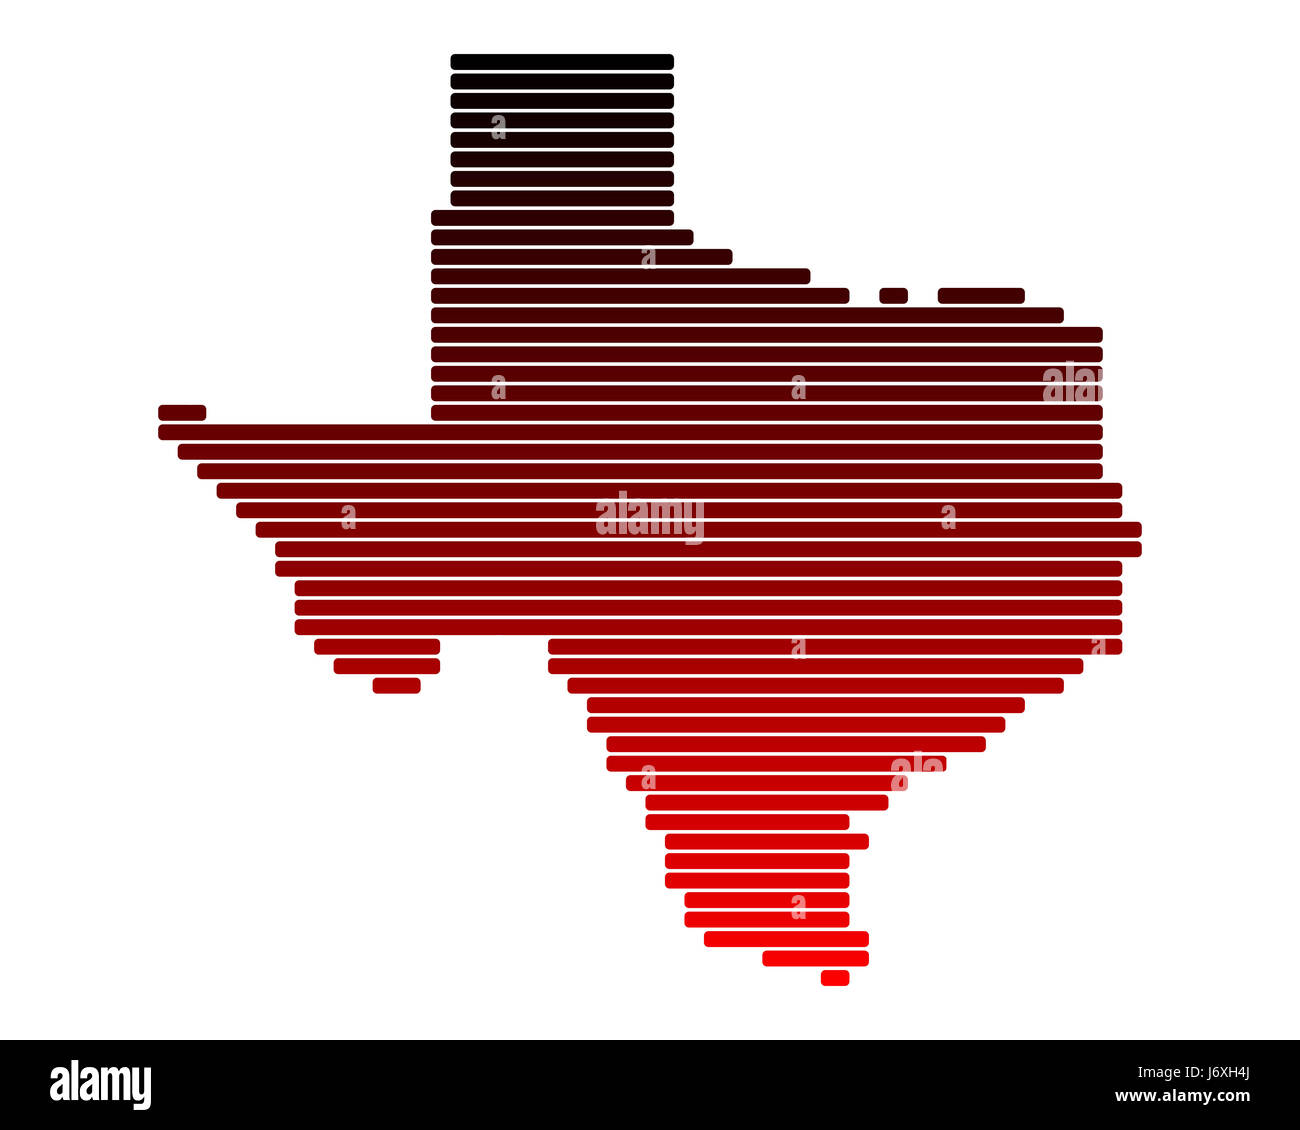 Complete Map Of Texas.Card Geography Complete Perfect Atlas Map Of The World Map Texas Red